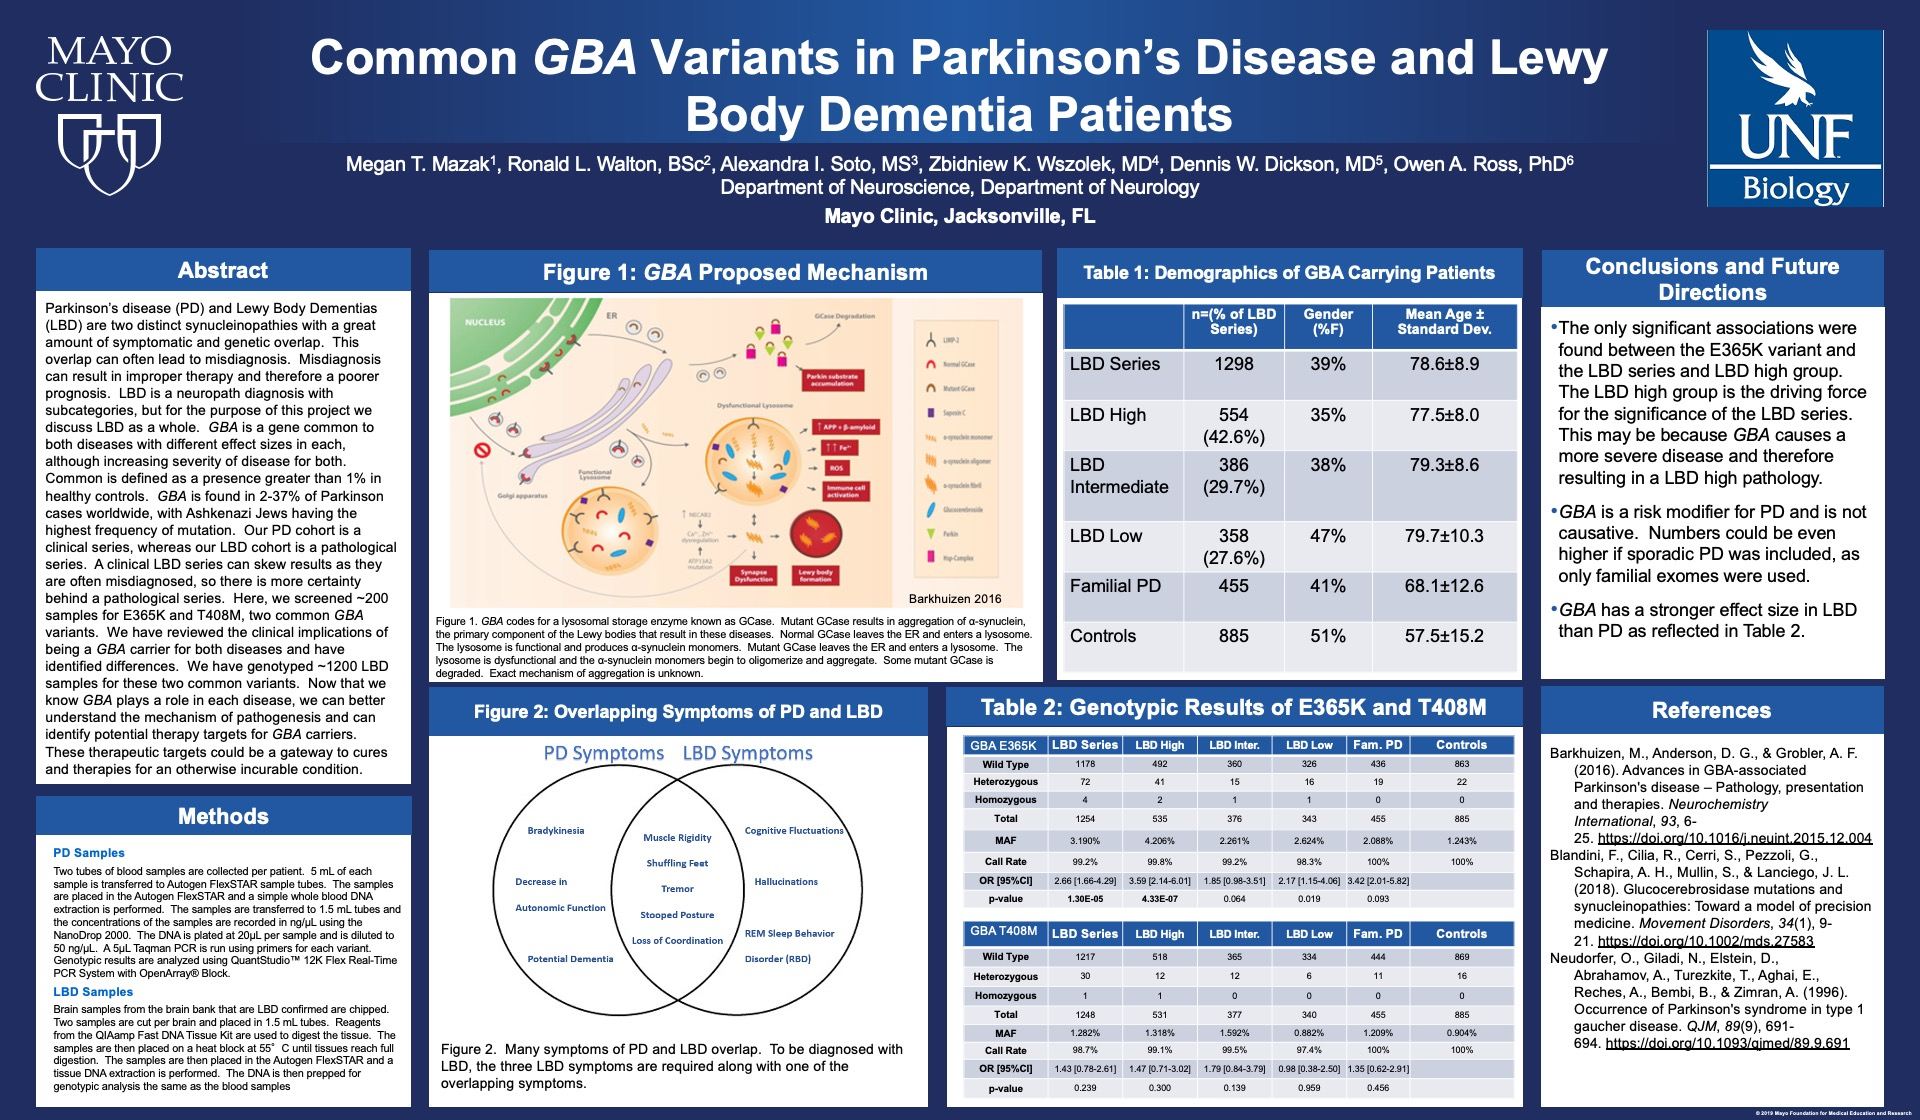 Common GBA Variants in Parkinson's Disease and Lewy Body Dementia Patients poster